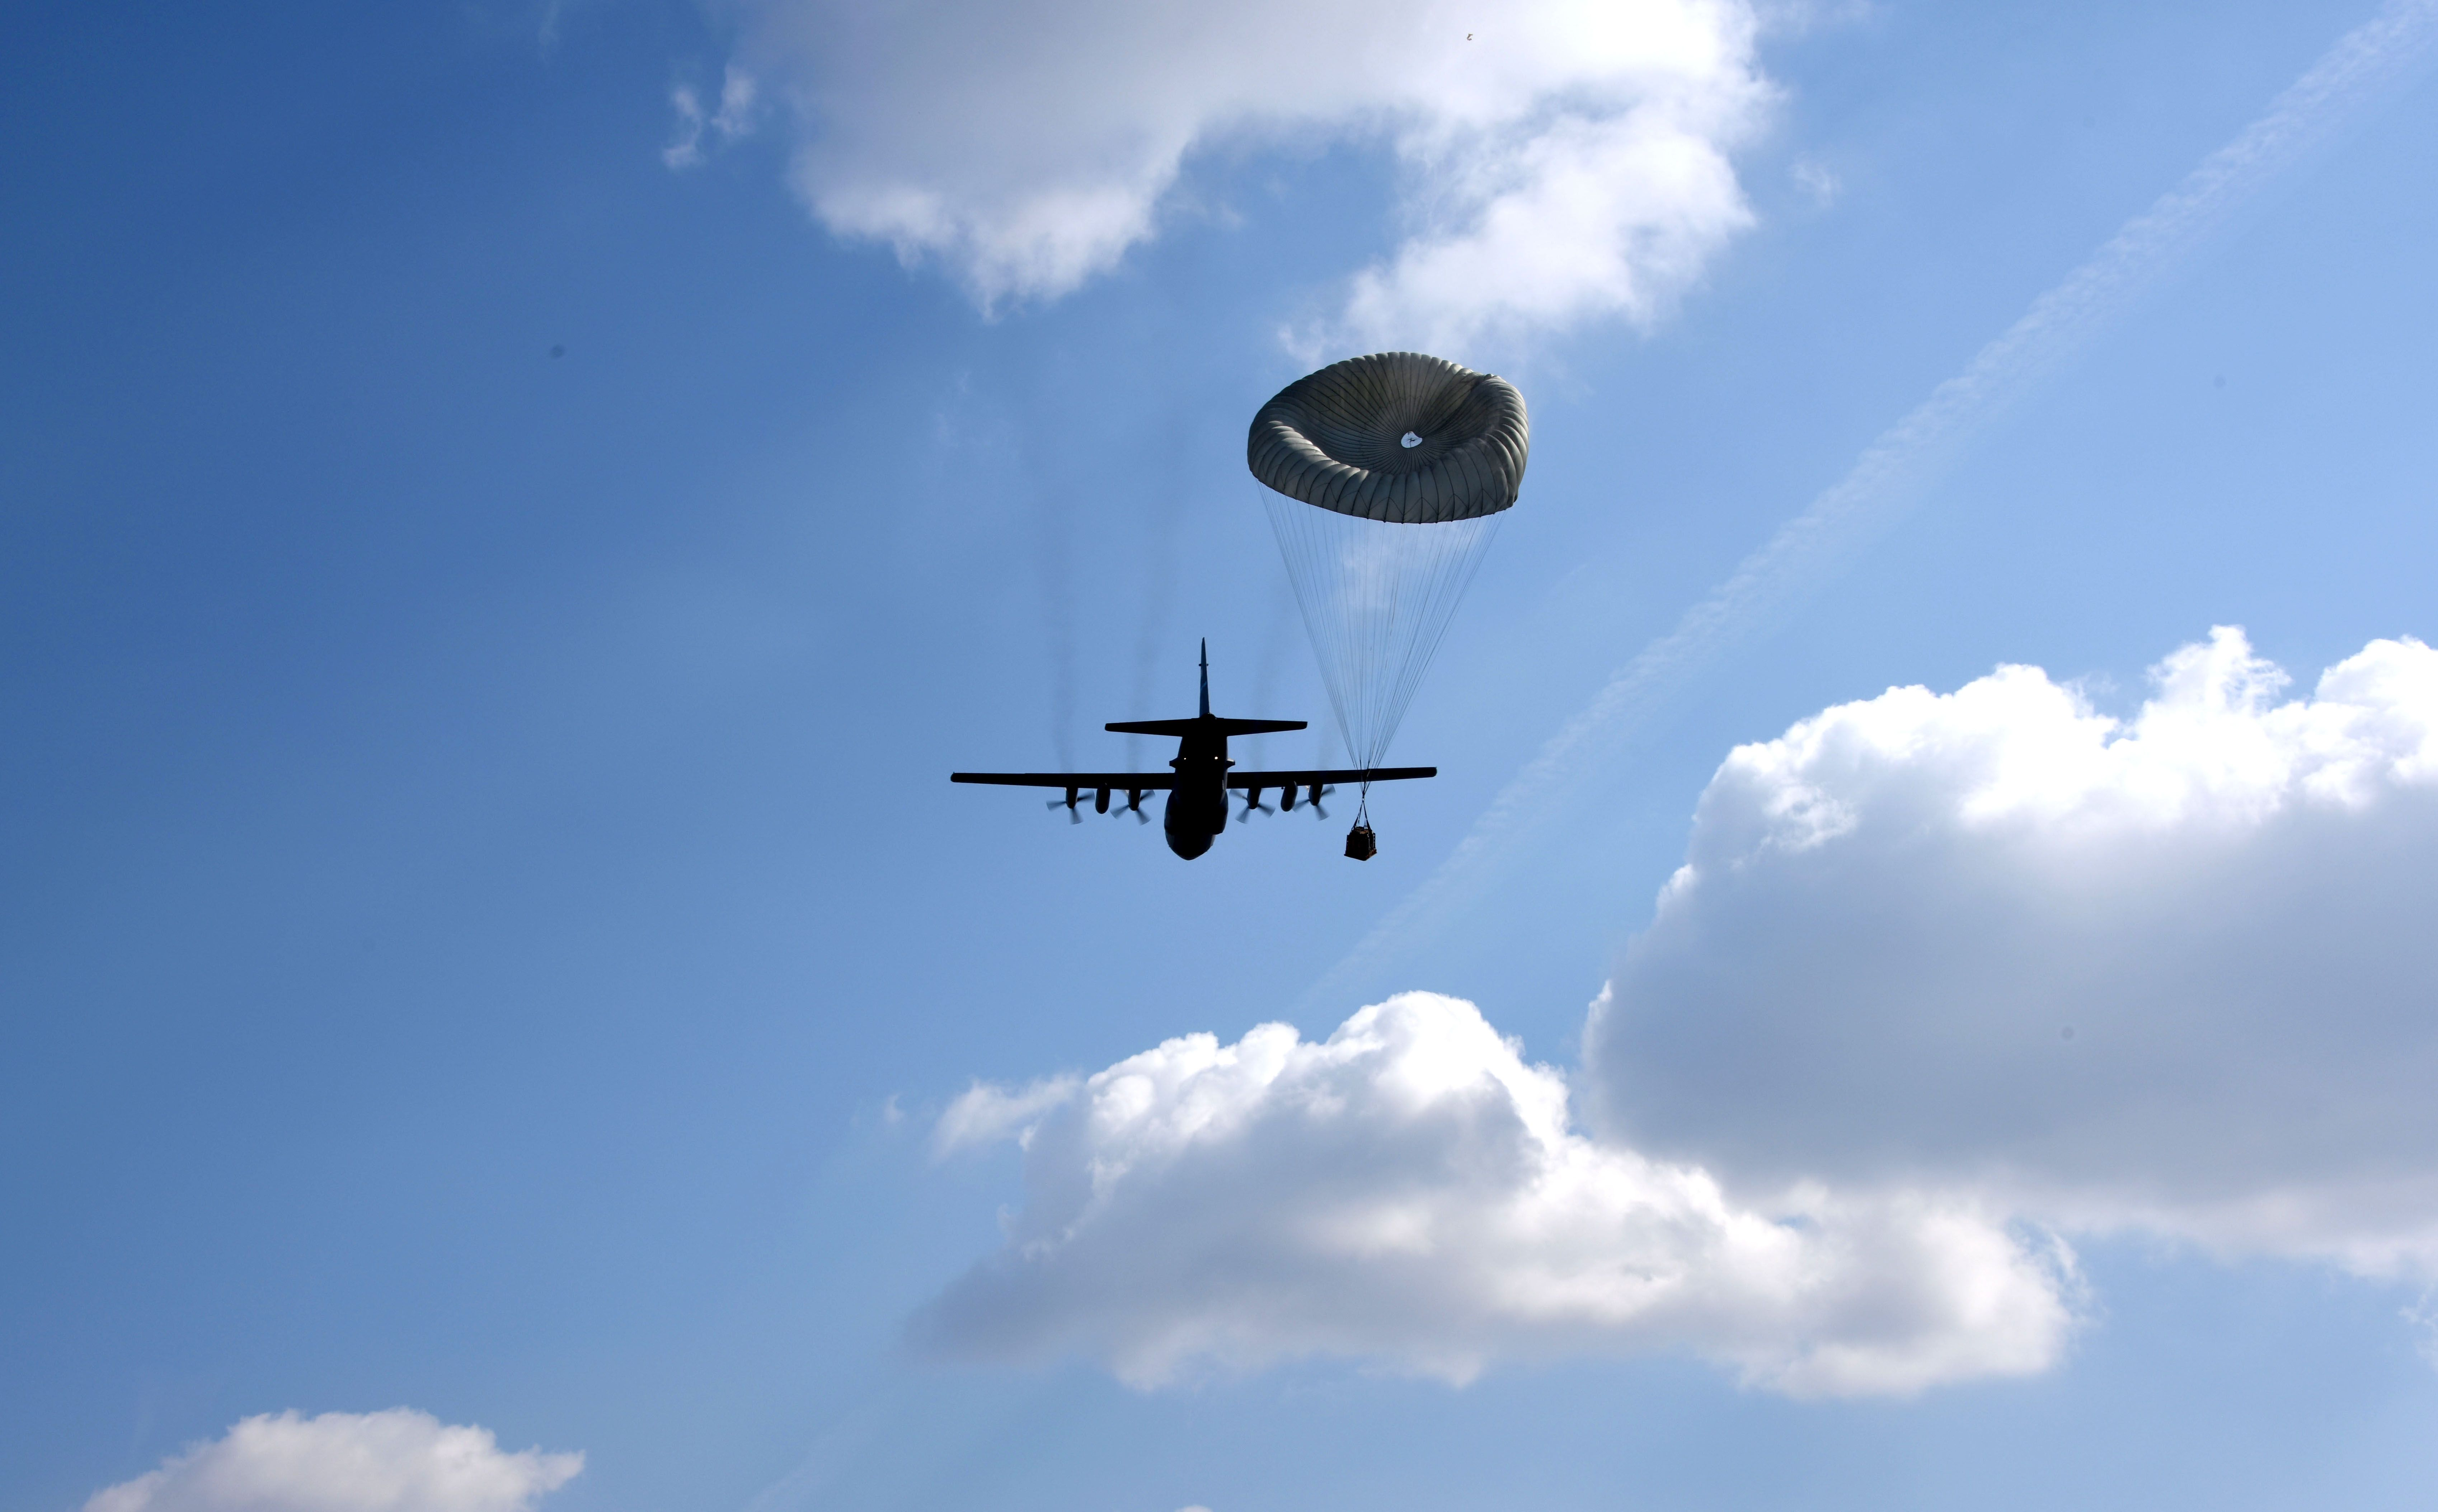 A U.S. C-130 Hercules aircraft conducts an airdrop at Powidz Air Base, Poland, March 24, 2017. Airmen from the U.S. and Poland participated in bilateral training during Aviation Detachment 17-2 in support of Operation Atlantic Resolve. These bilateral trainings focused on maintaining joint readiness while building interoperability. (Air National Guard photo by Staff Sgt. Alonzo Chapman/Released).